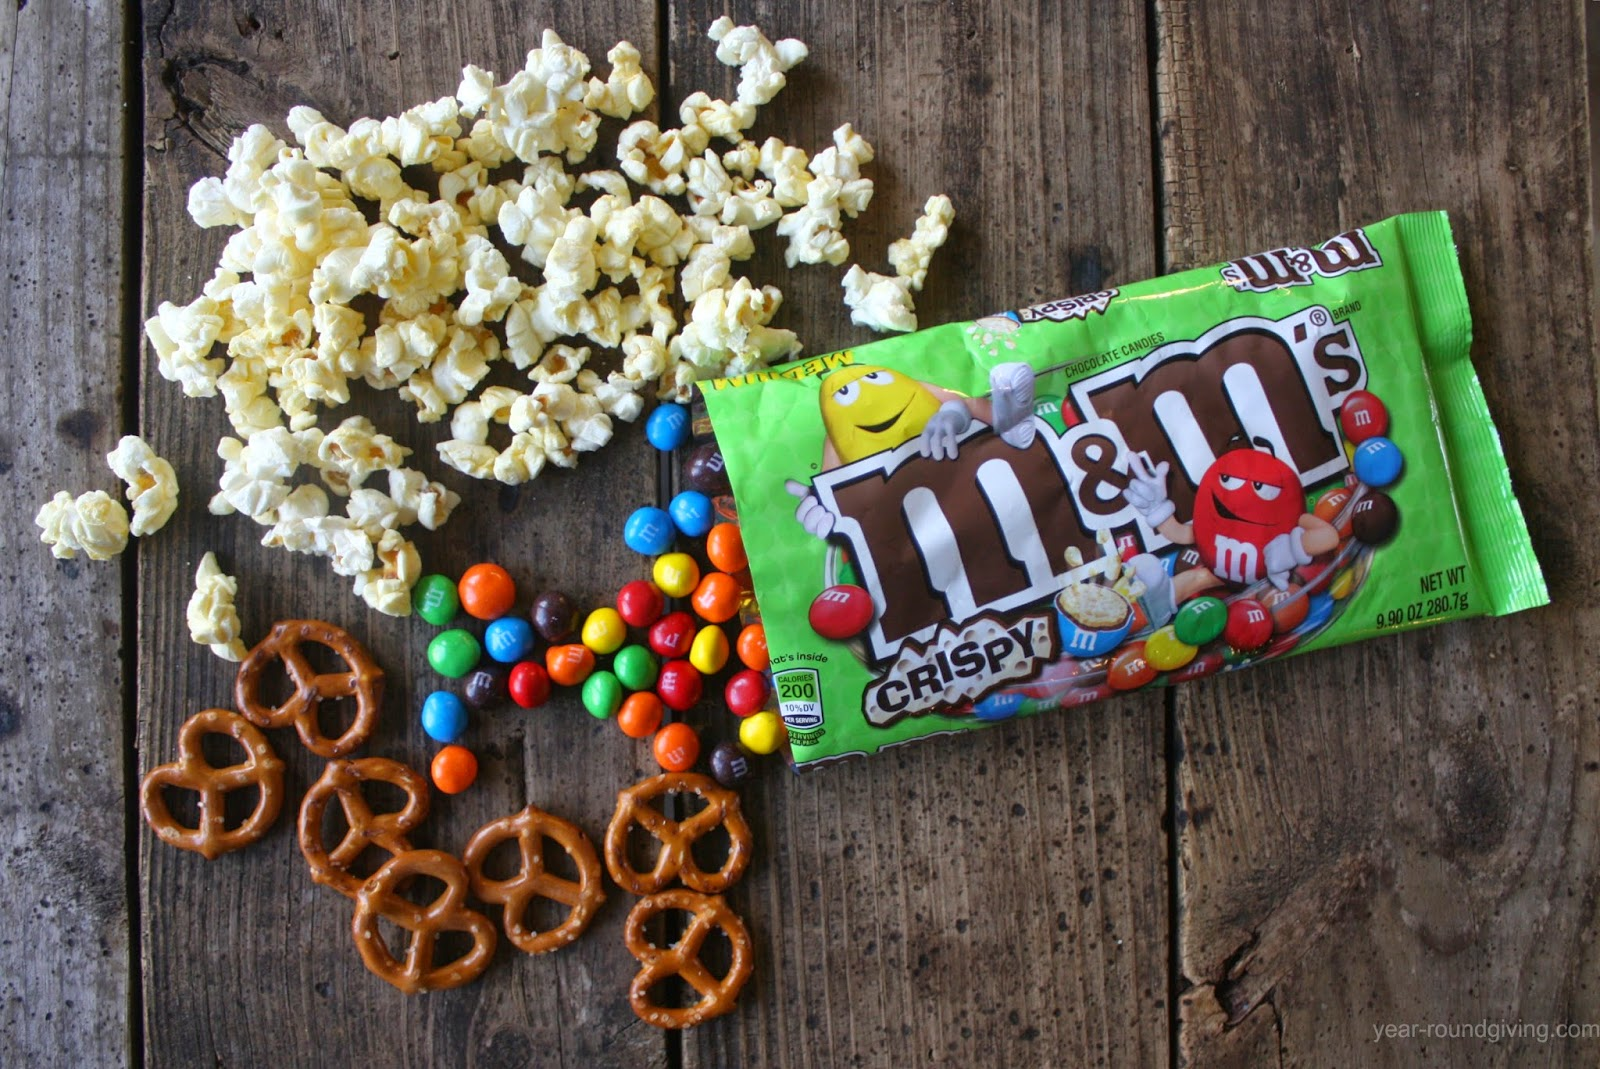 M&M's® Crispy popcorn snack mix ingredients